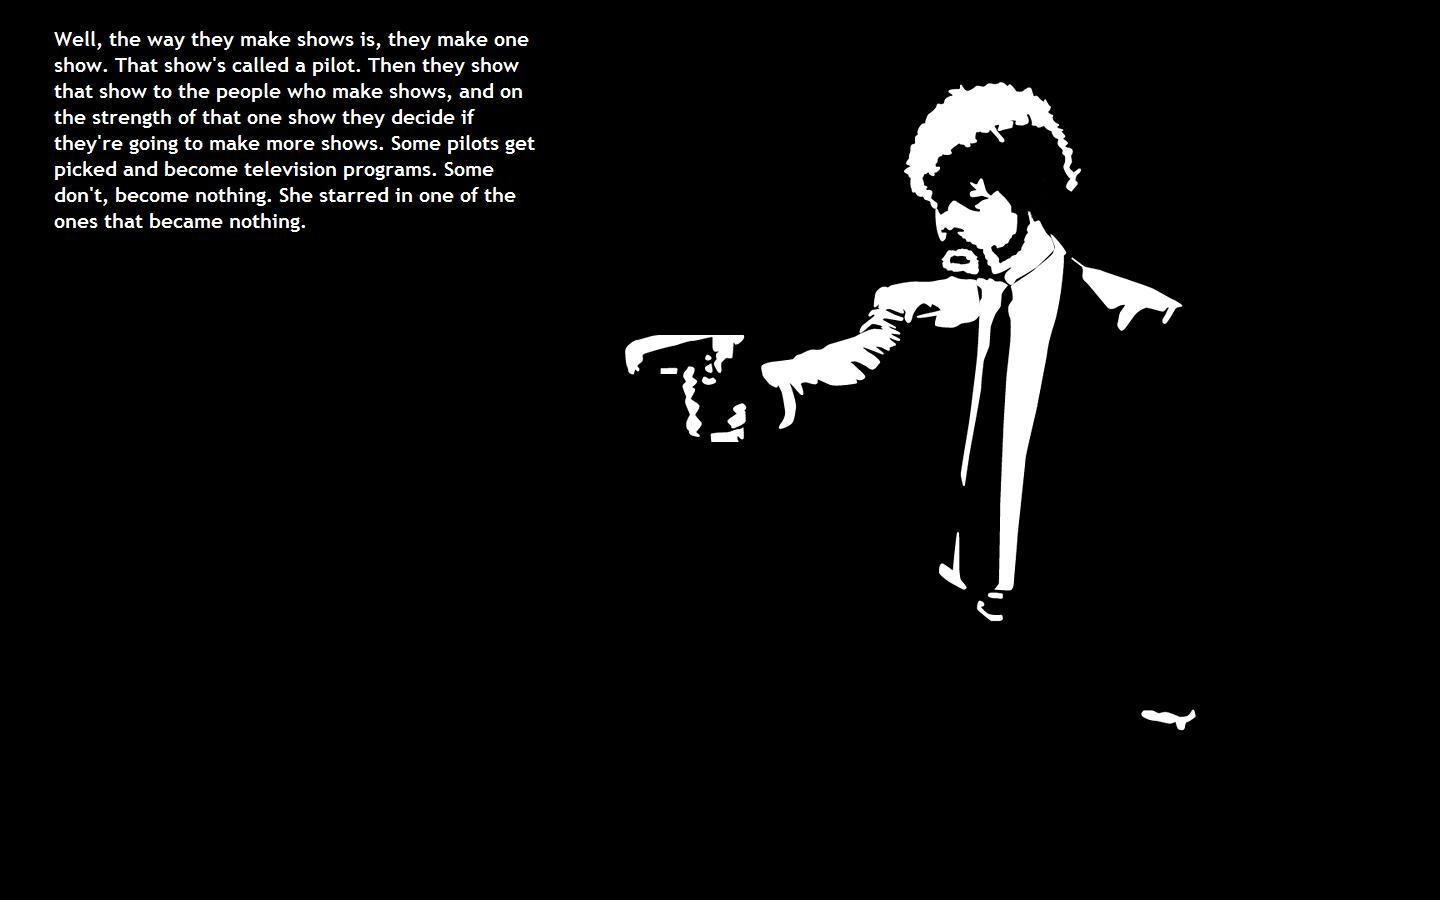 pulp fiction black background HD Wallpaper